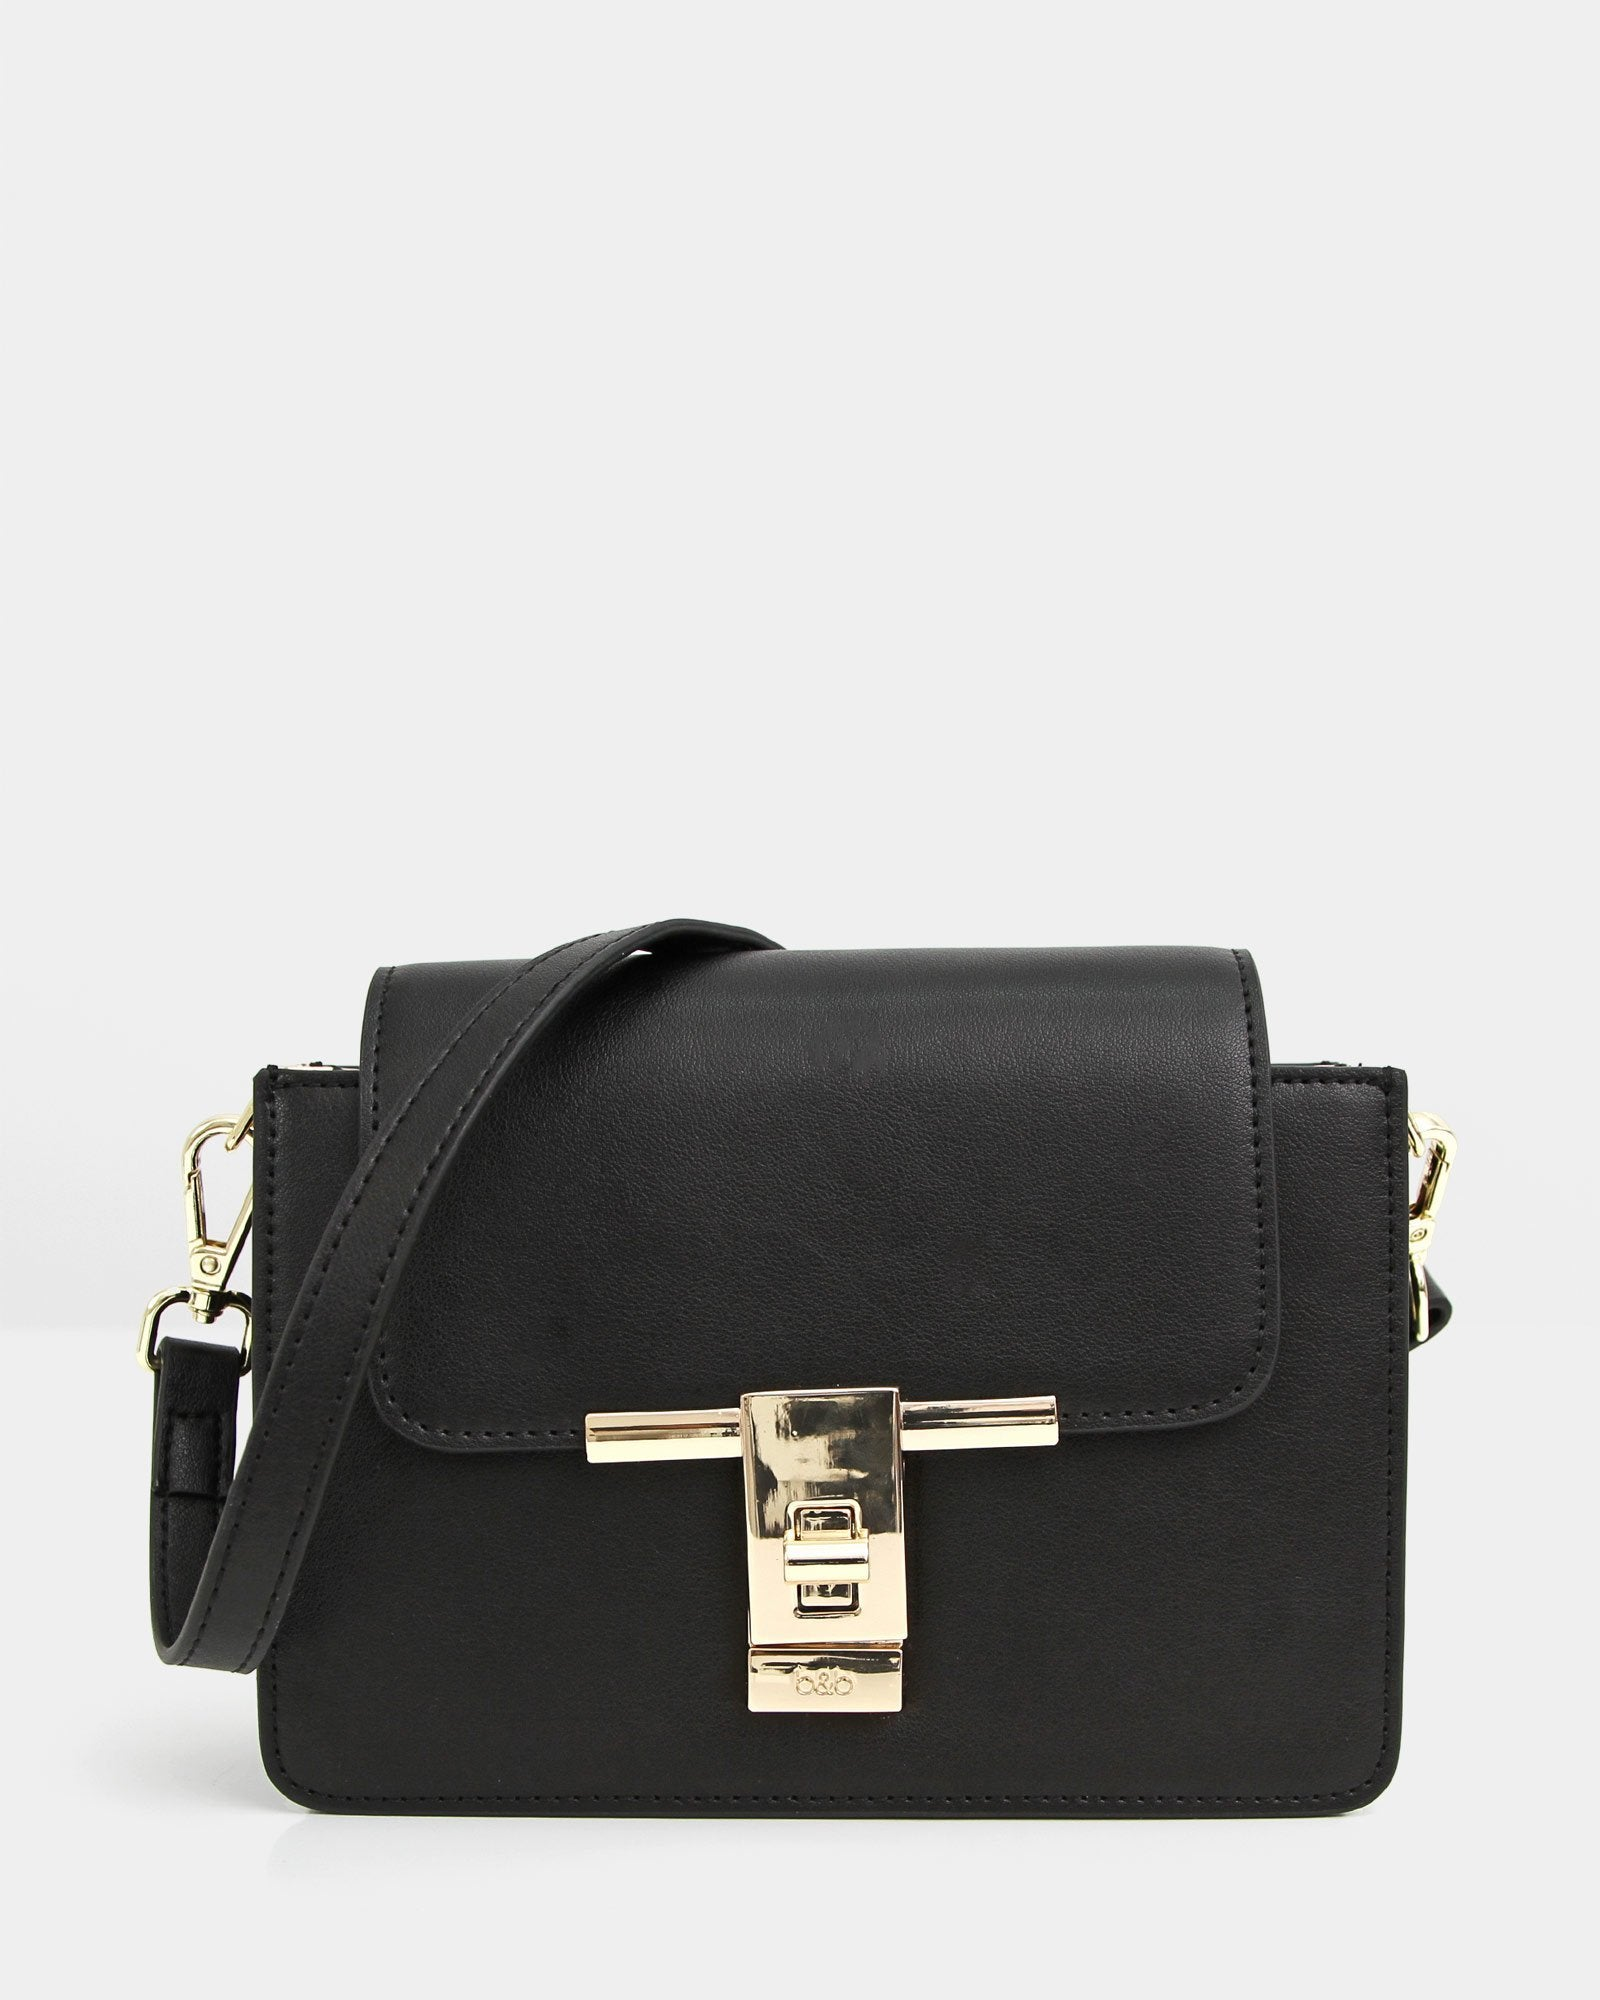 black-leather-handbag-front.jpg